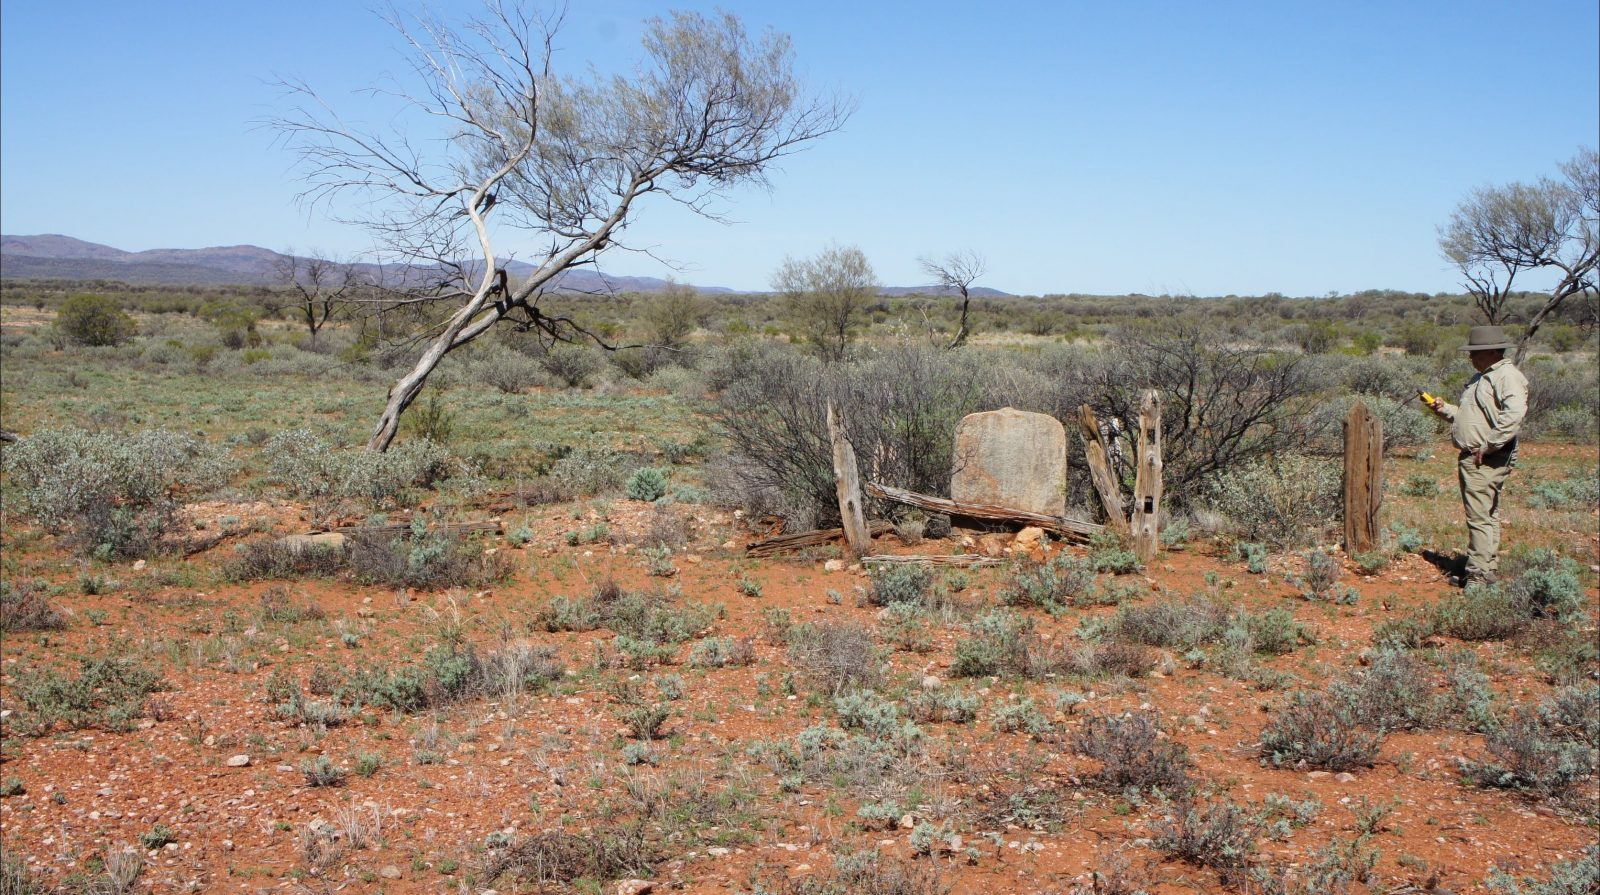 The remains of graves at the Winnecke Goldfields Cemetery.